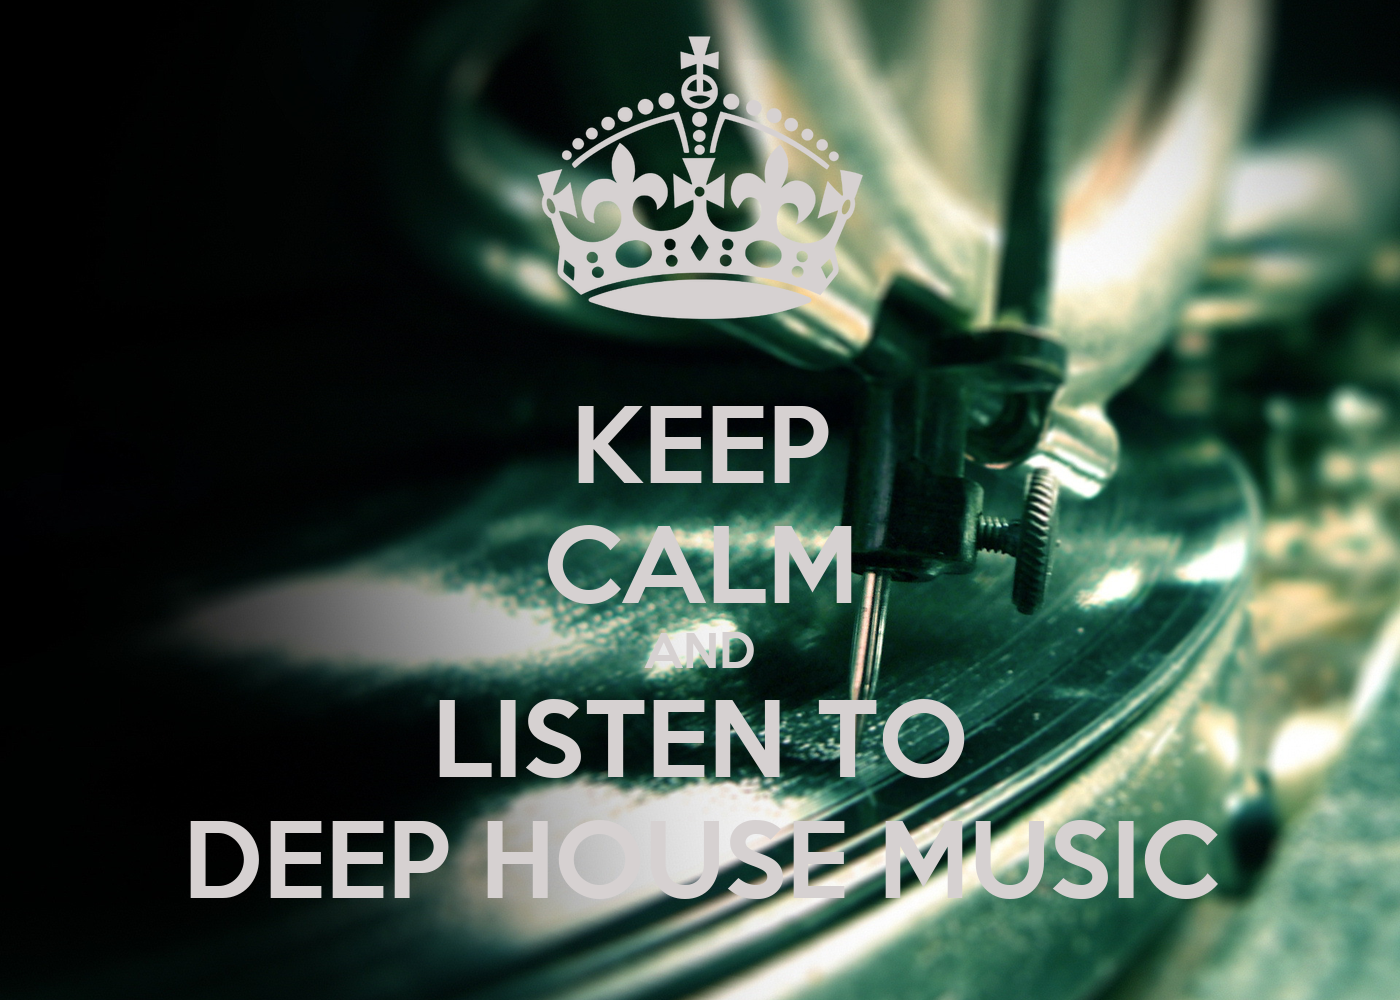 Keep calm and listen to deep house music poster for The best deep house music